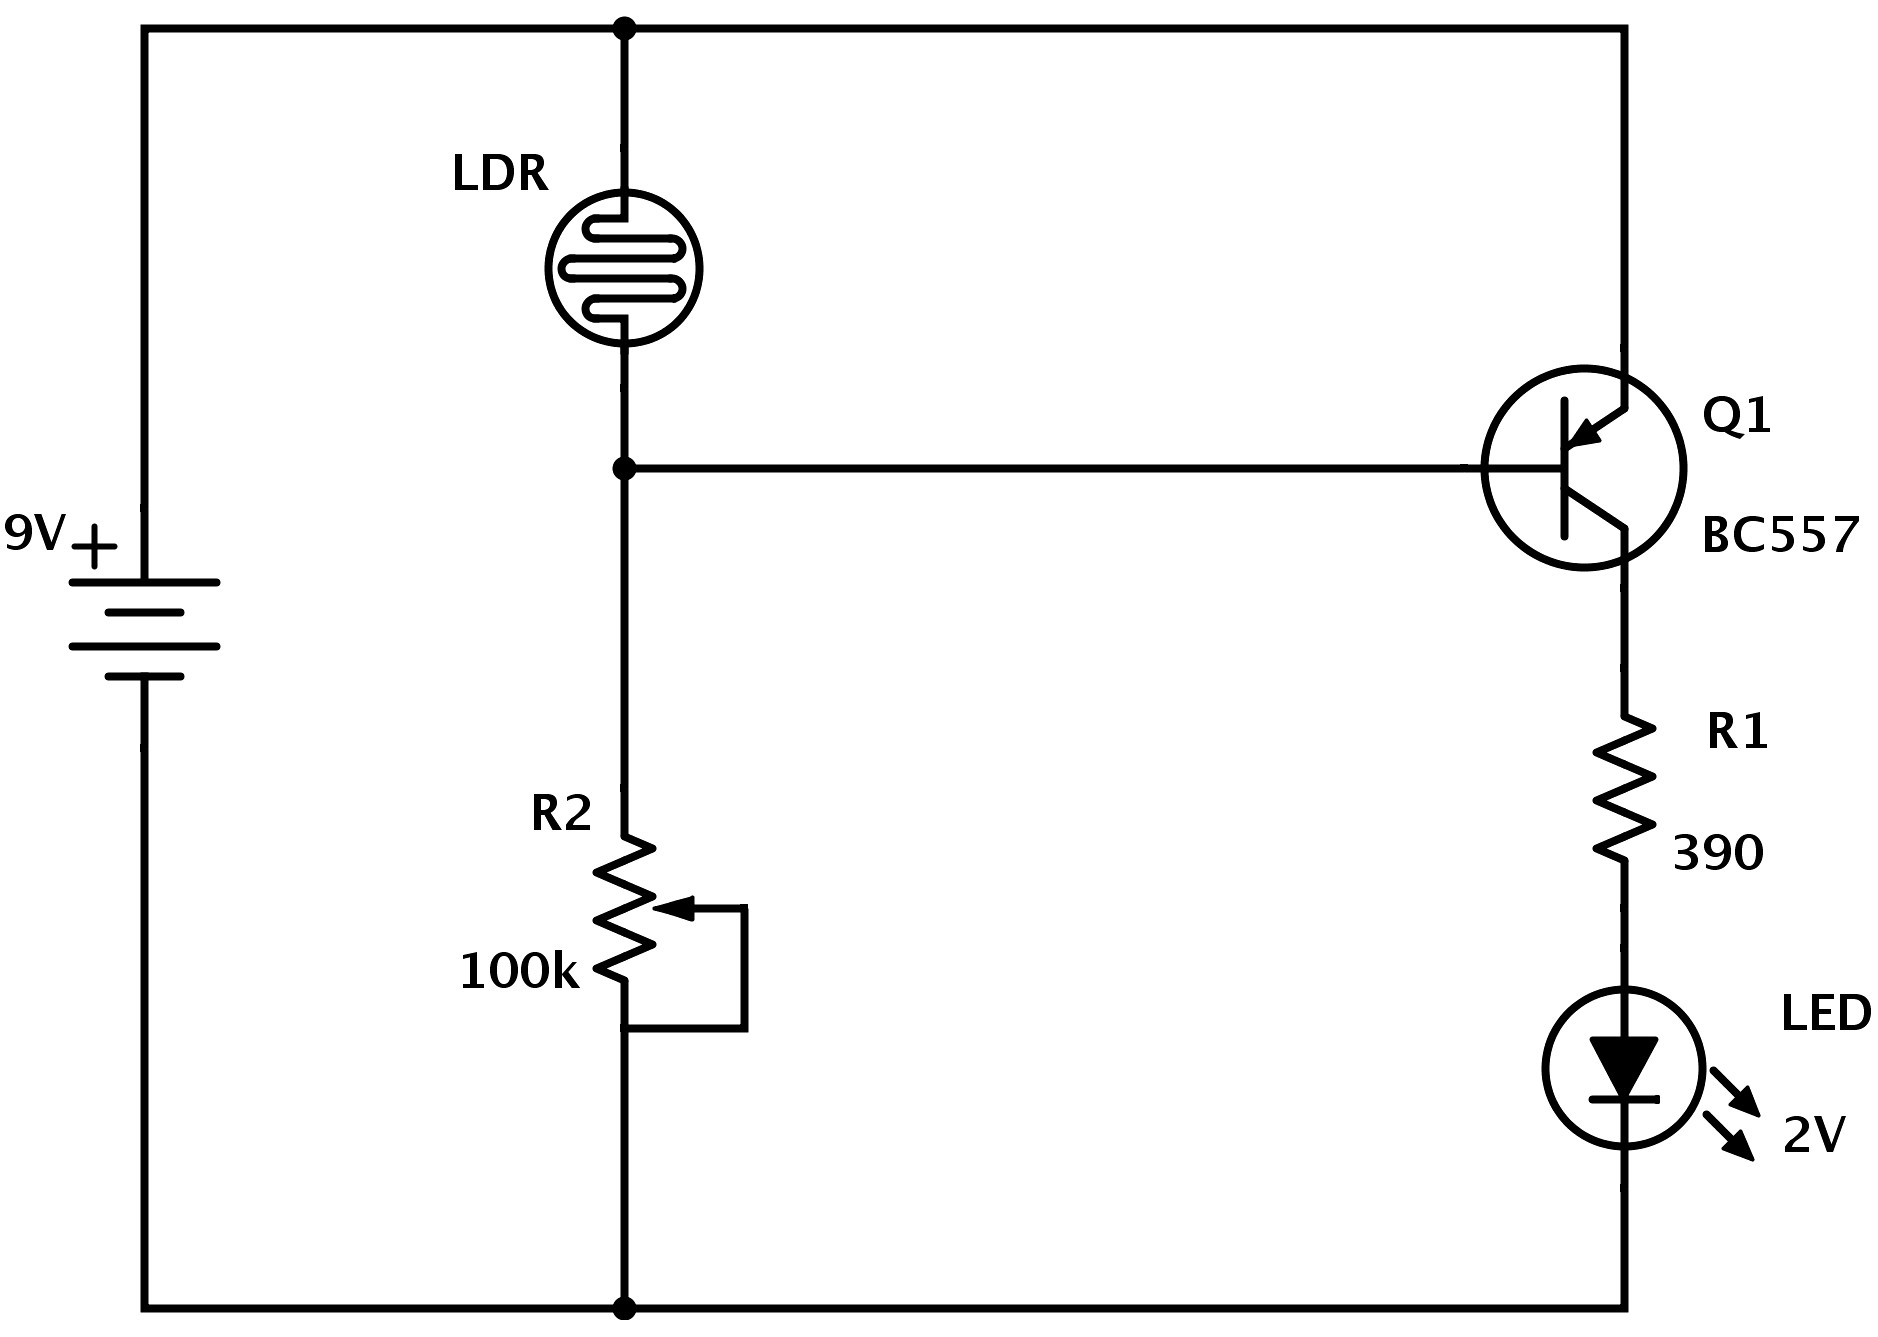 ponent Series Circuit Diagrams For The Od Ldr Diagram Build Electronic Circuits 4th Grade Dark Det